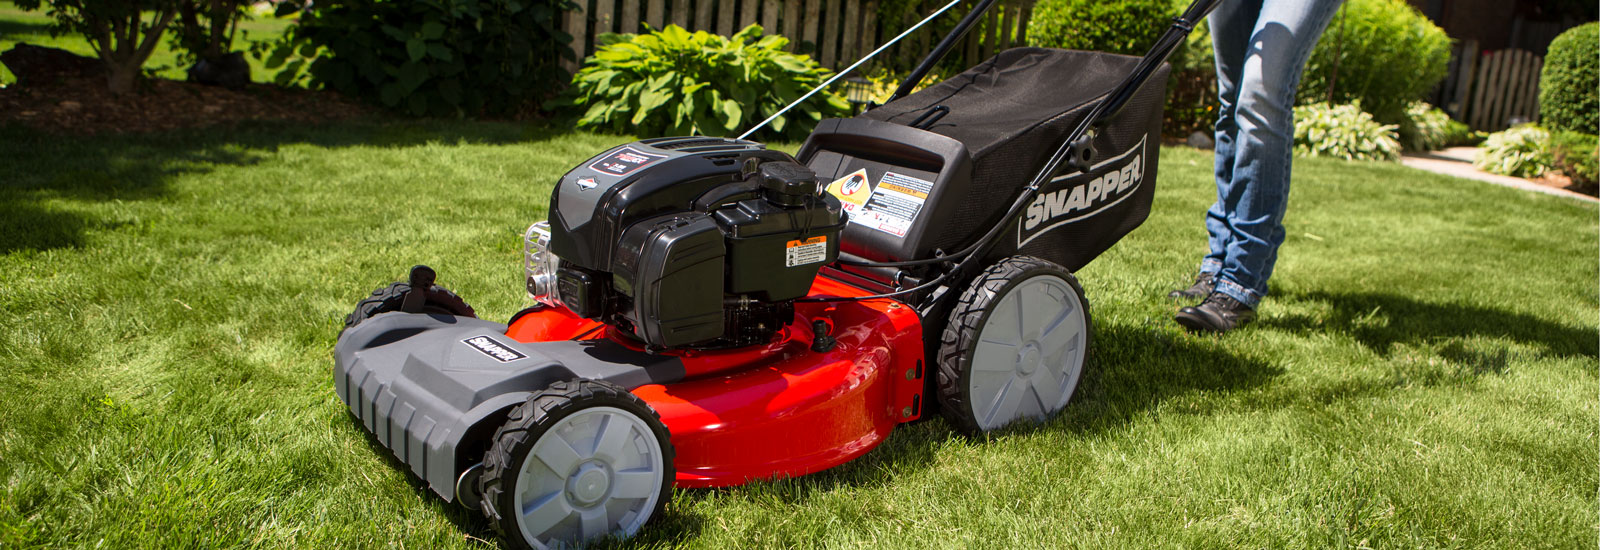 Close up side view of a Snapper push mower.